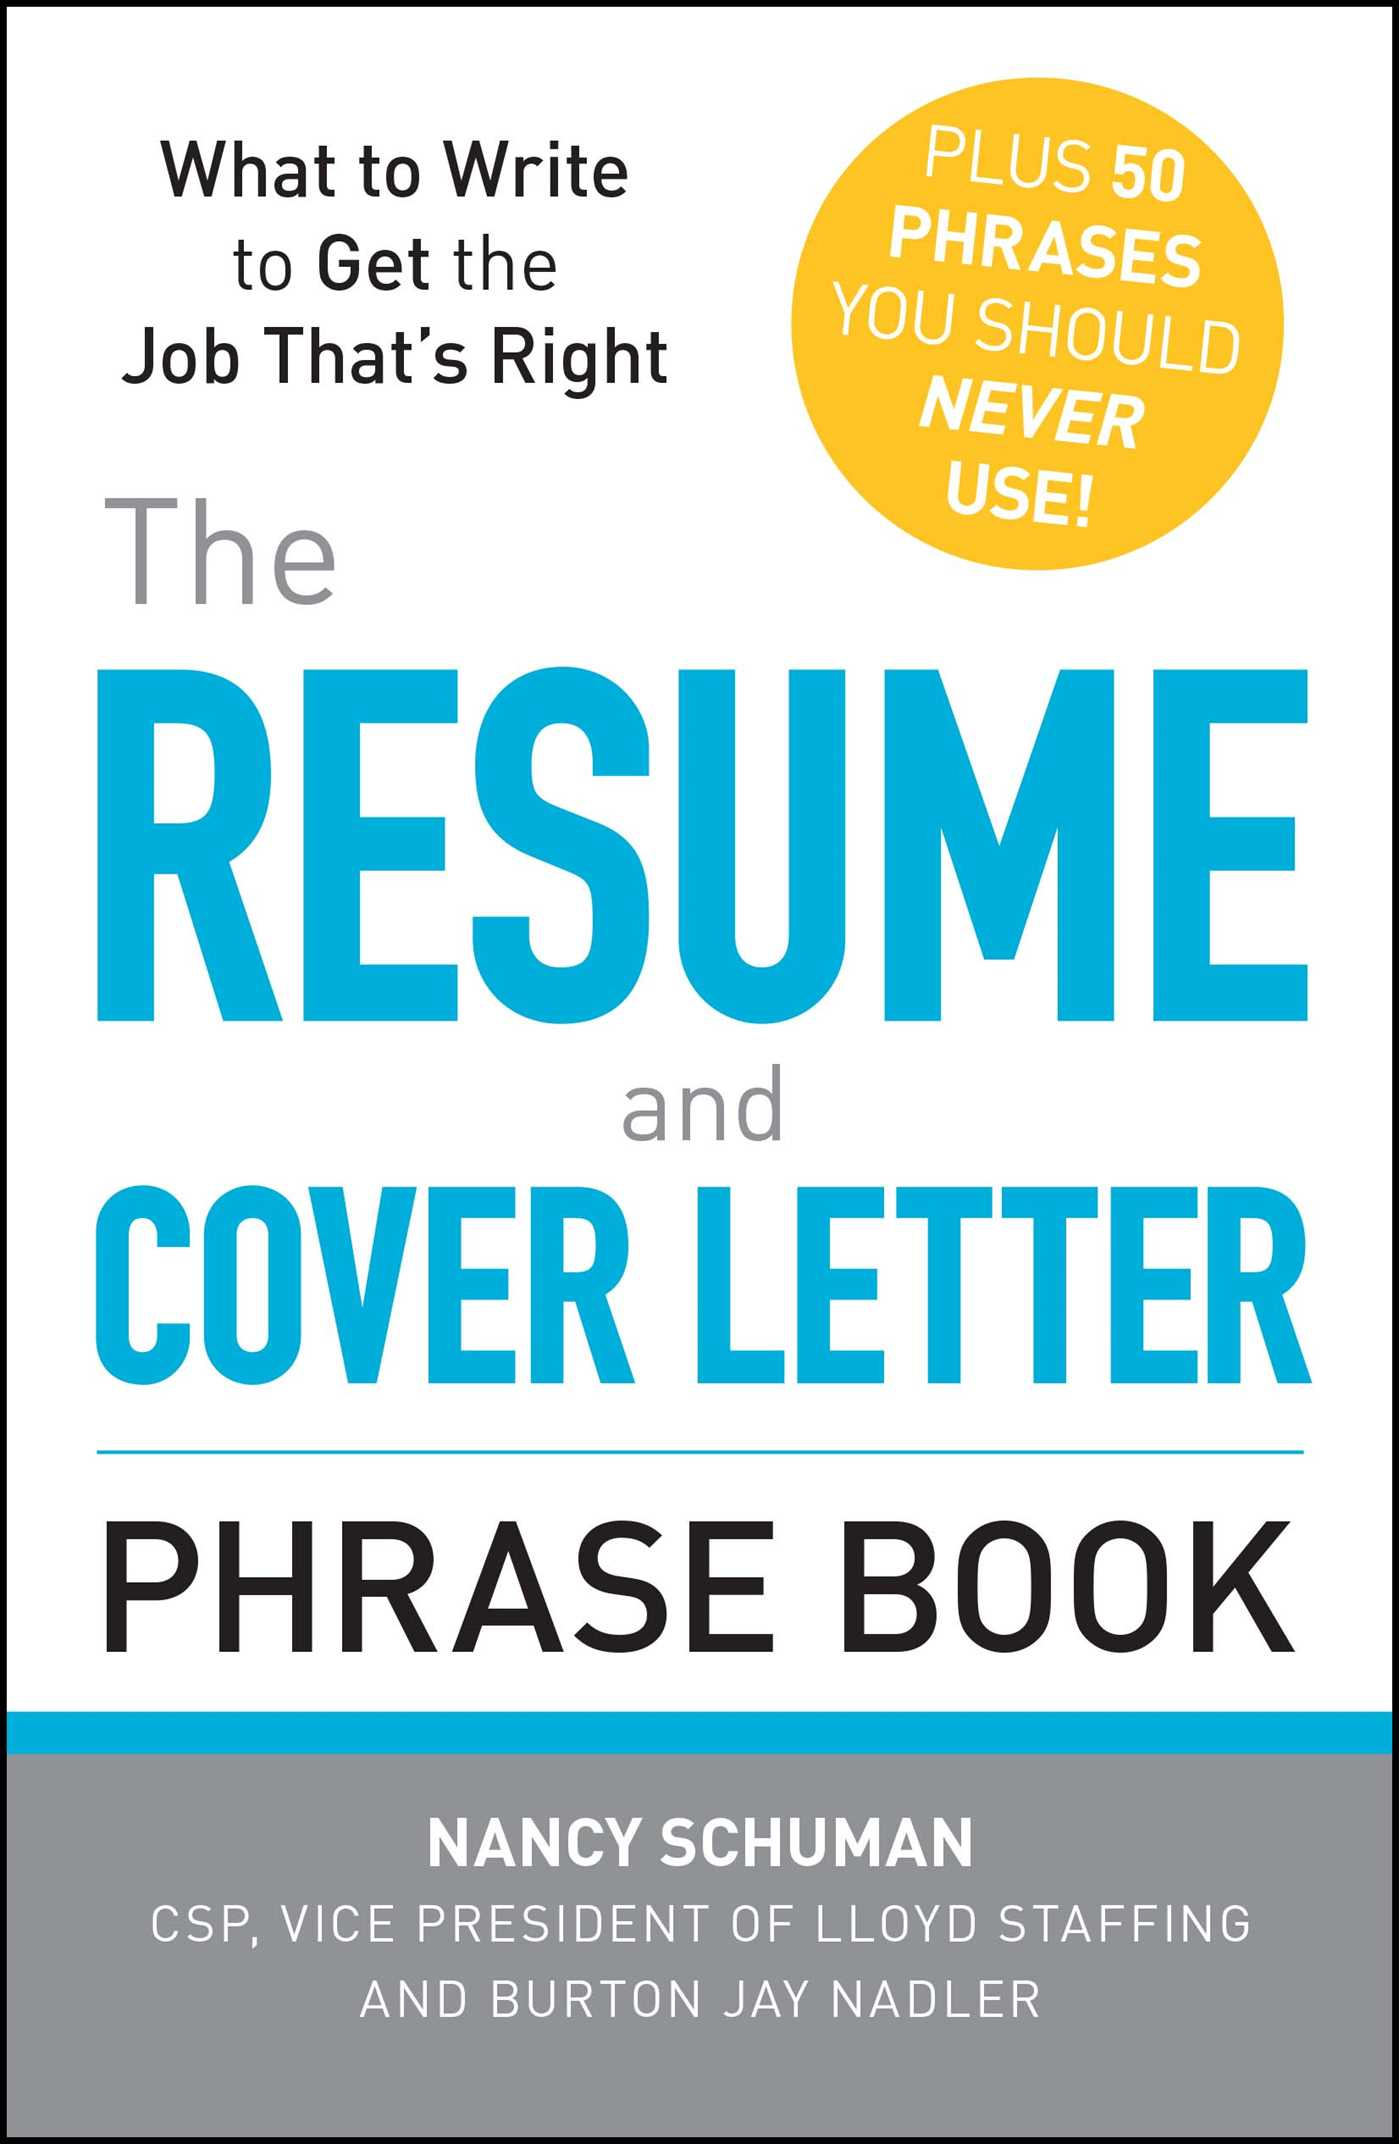 The Resume and Cover Letter Phrase Book | Book by Nancy Schuman ...